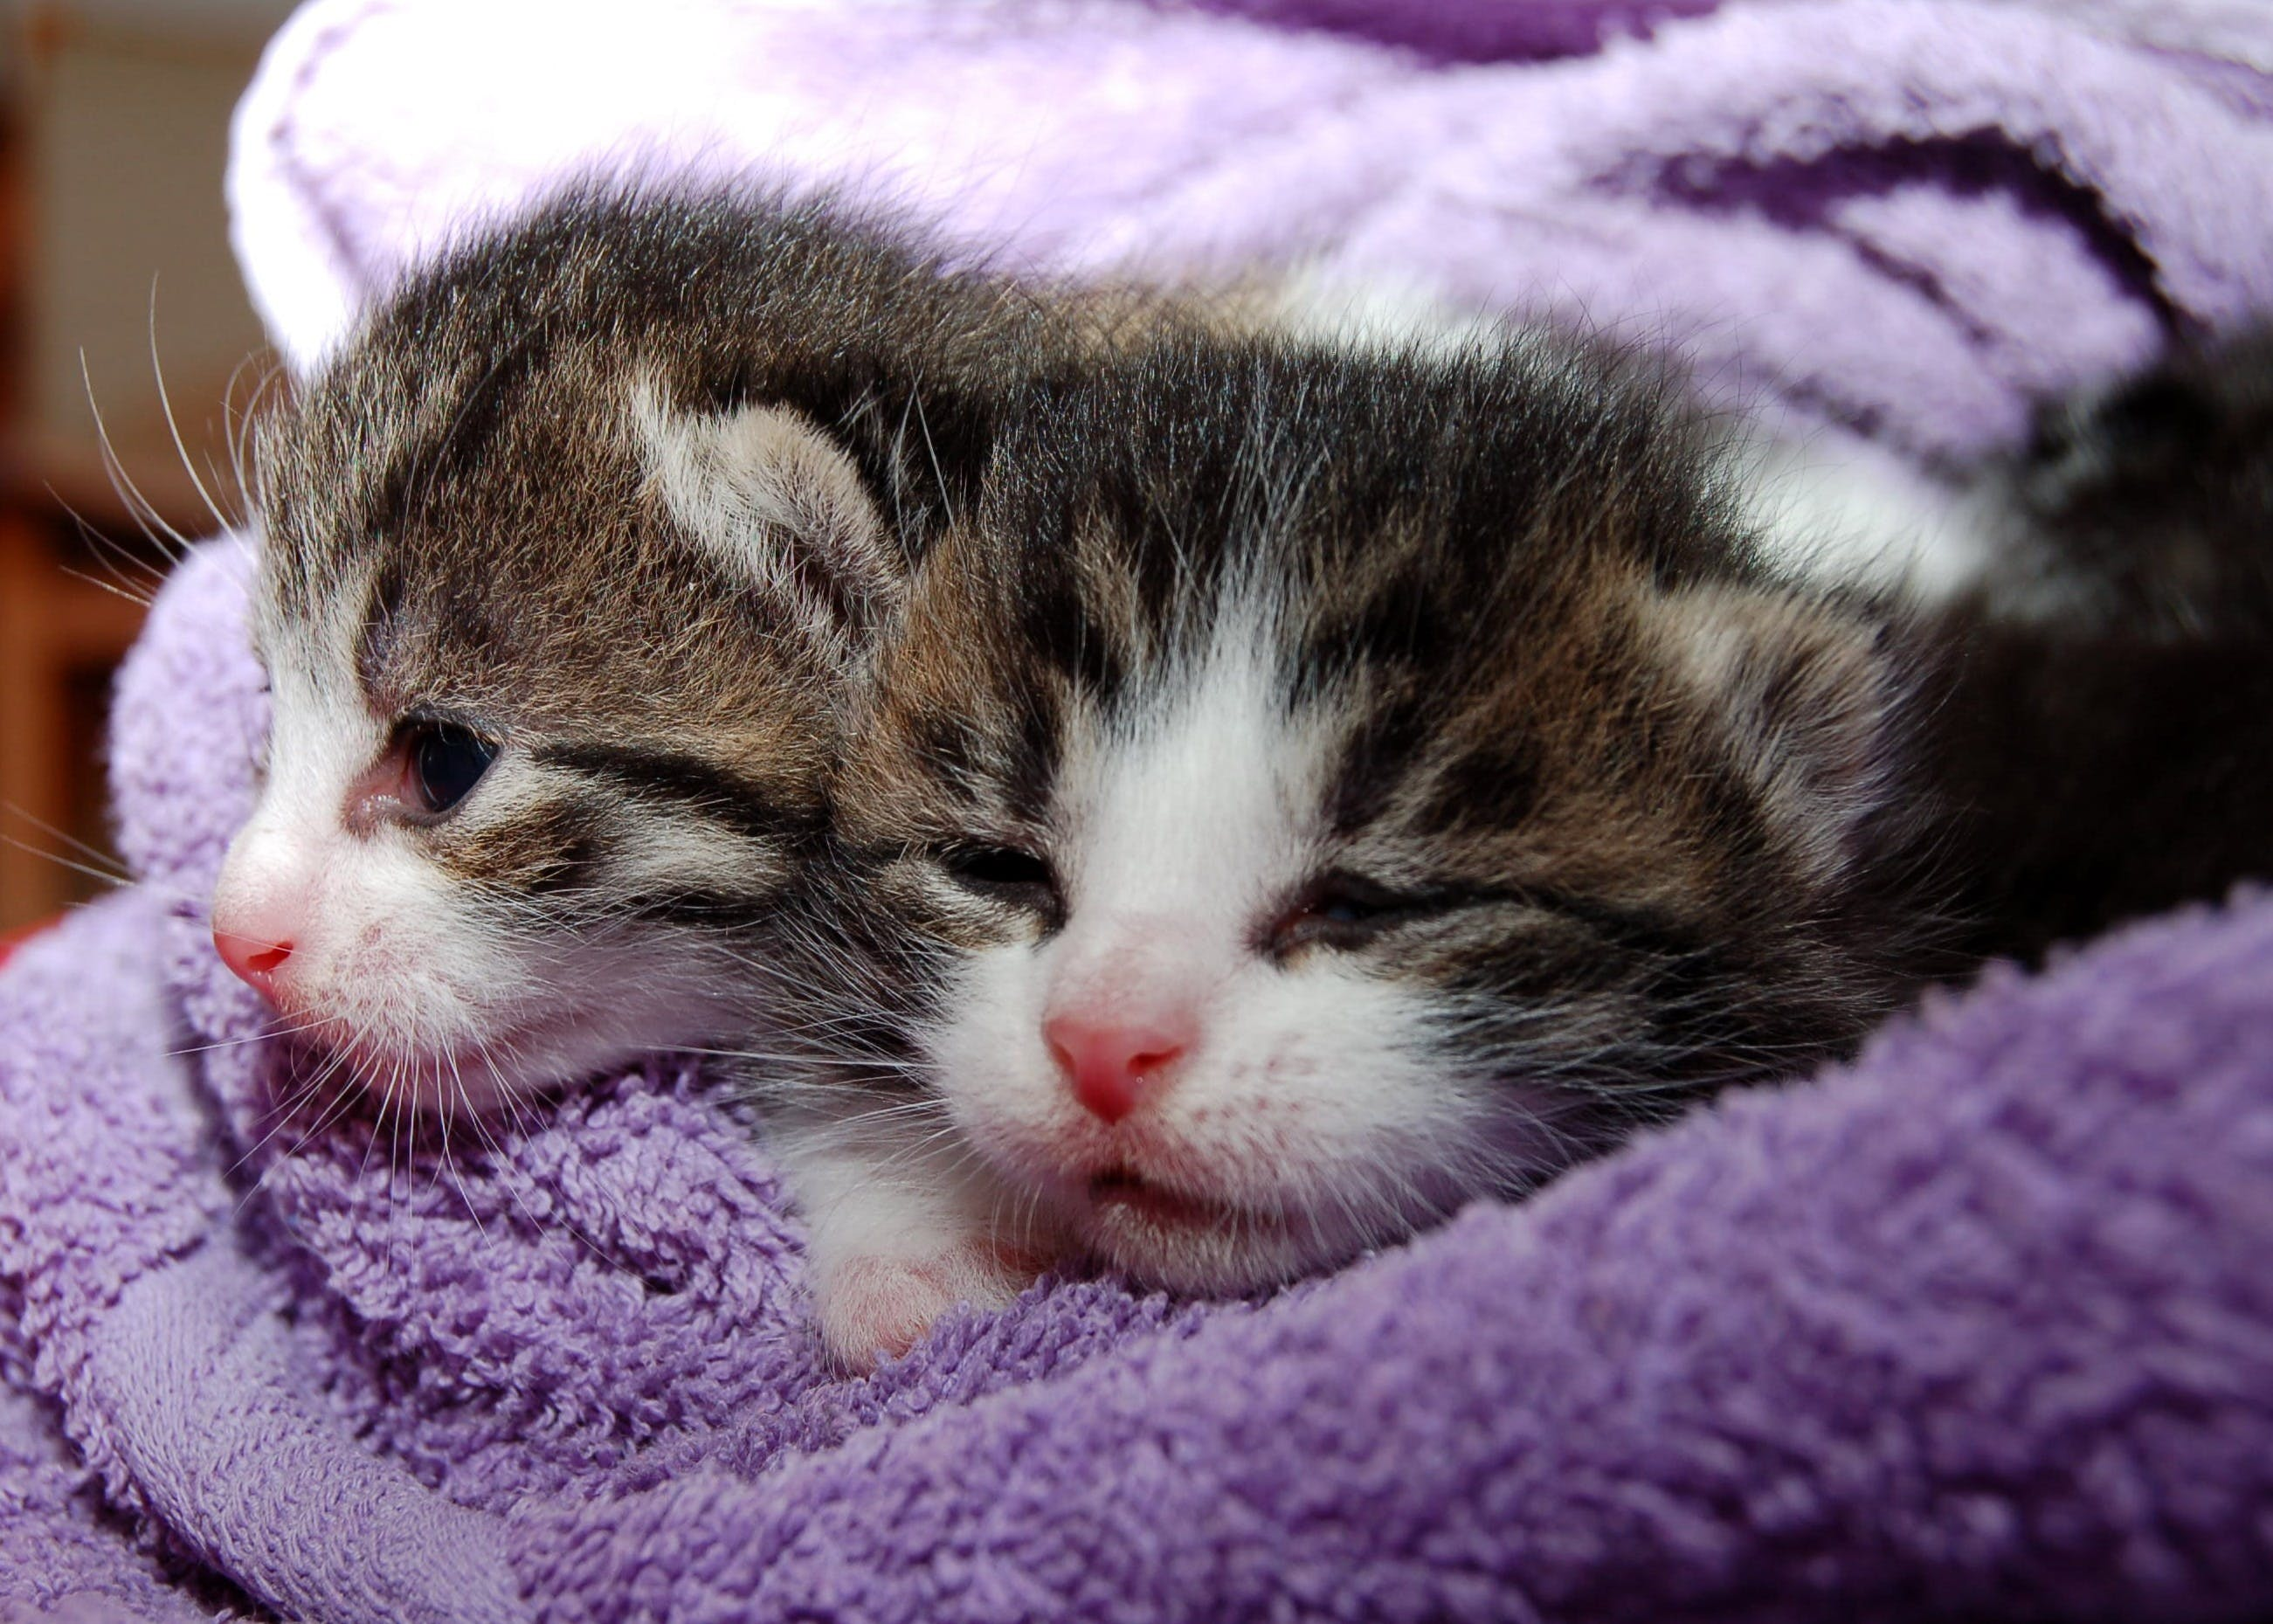 Black Brown and White Kittens in Purple Towel